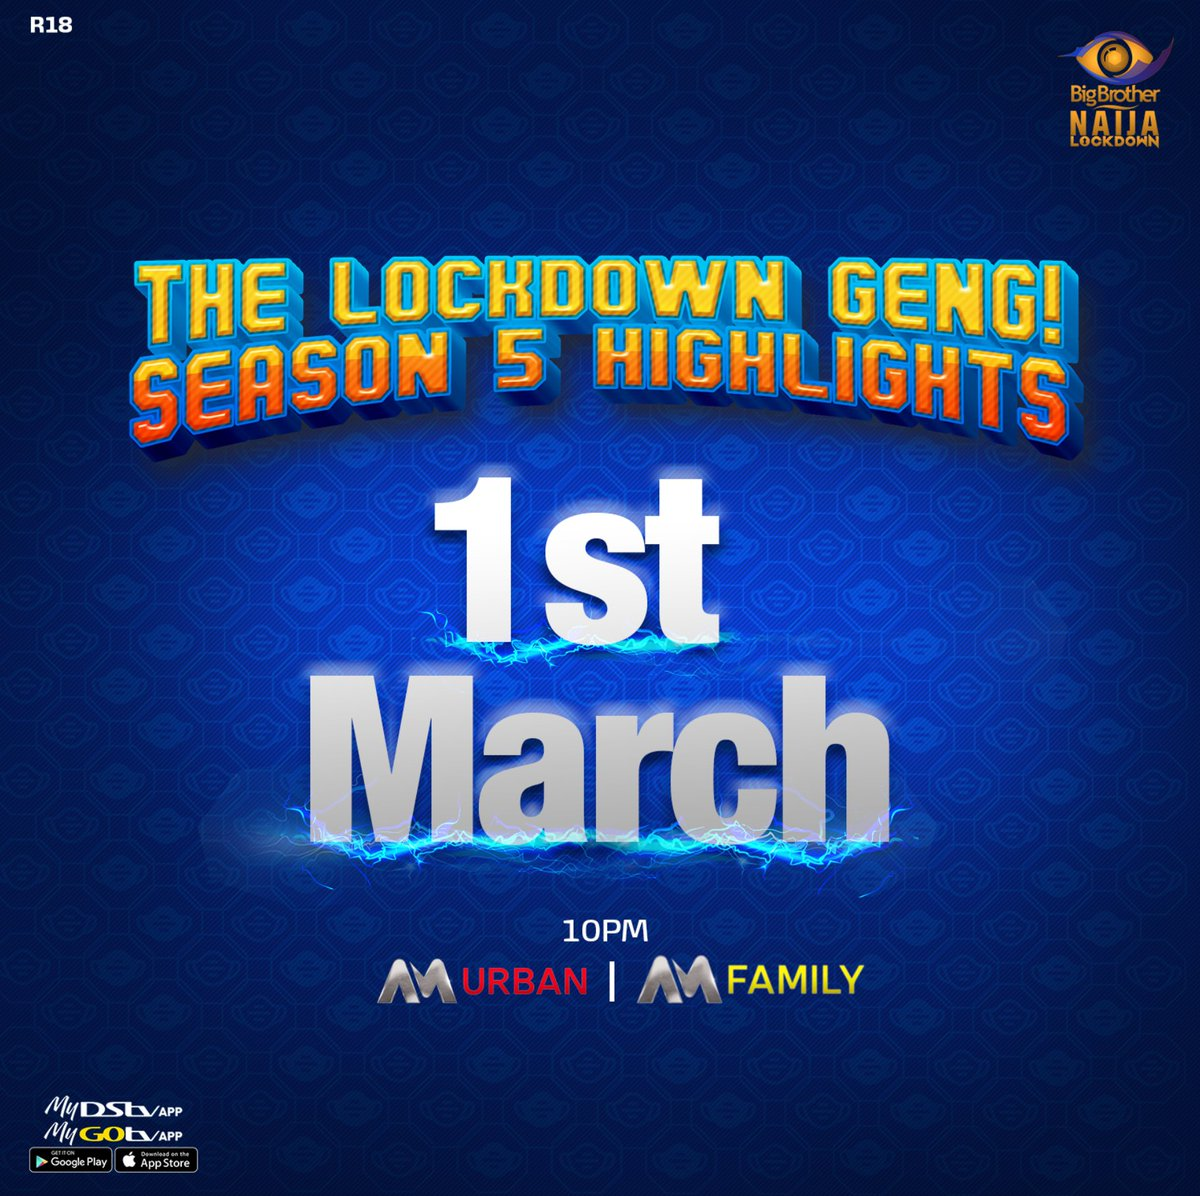 While we anticipate the Reunion, let's relive the hottest moments from the #BBNaija Lockdown season, shall we? 🔥🥵  Set your calendars for #BBNaijaHighlights on the 1st of March on @DStvNg AM Urban and Family at 22:00 WAT.